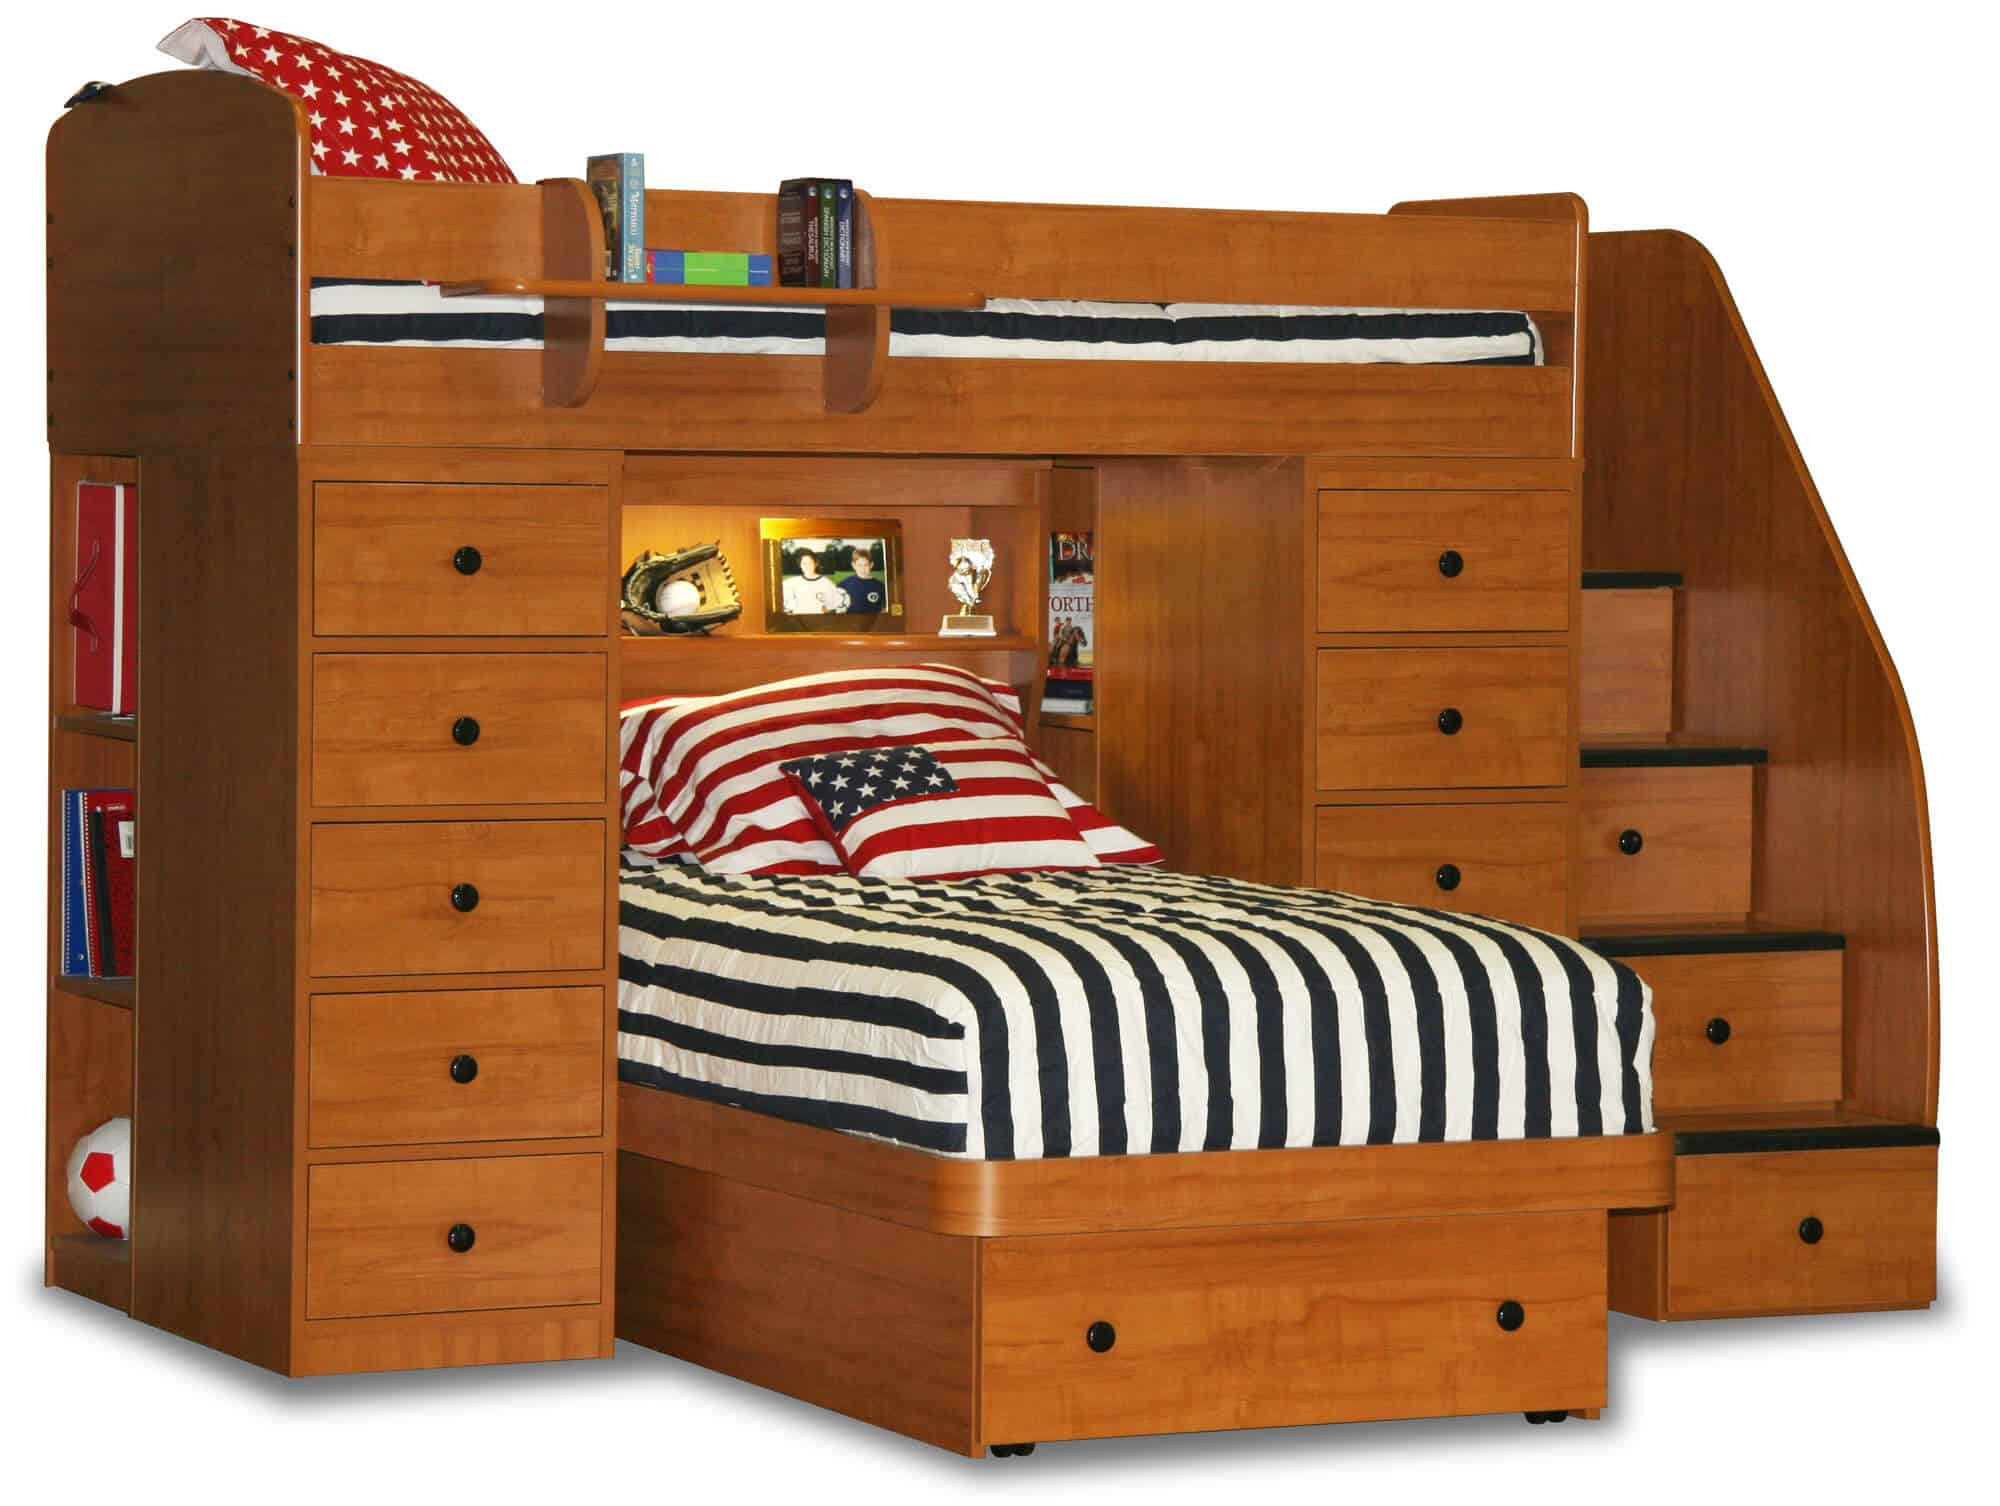 With this model, we see a variation on the previous bed, with even more storage tucked into the framework. A single large drawer emerges from the lower, movable bed frame, while intricate shelving is built into the sides and center of the frame.